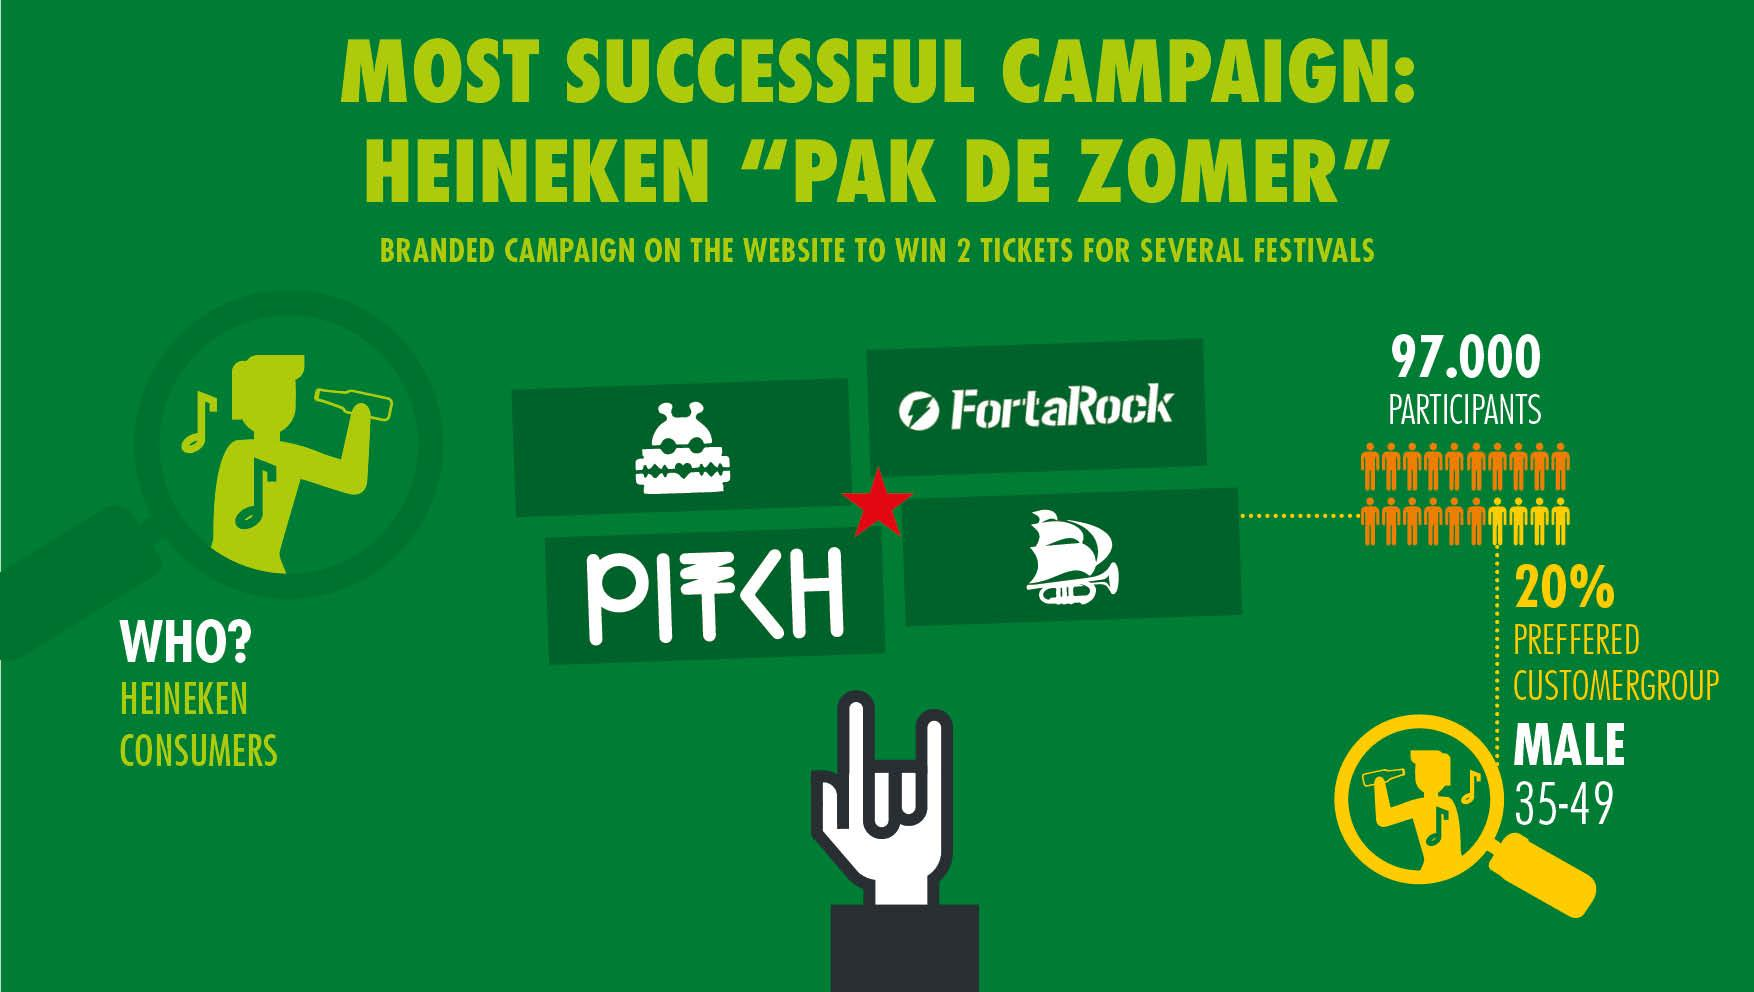 slides-heineken---team-digital-nl---year-201521.jpg